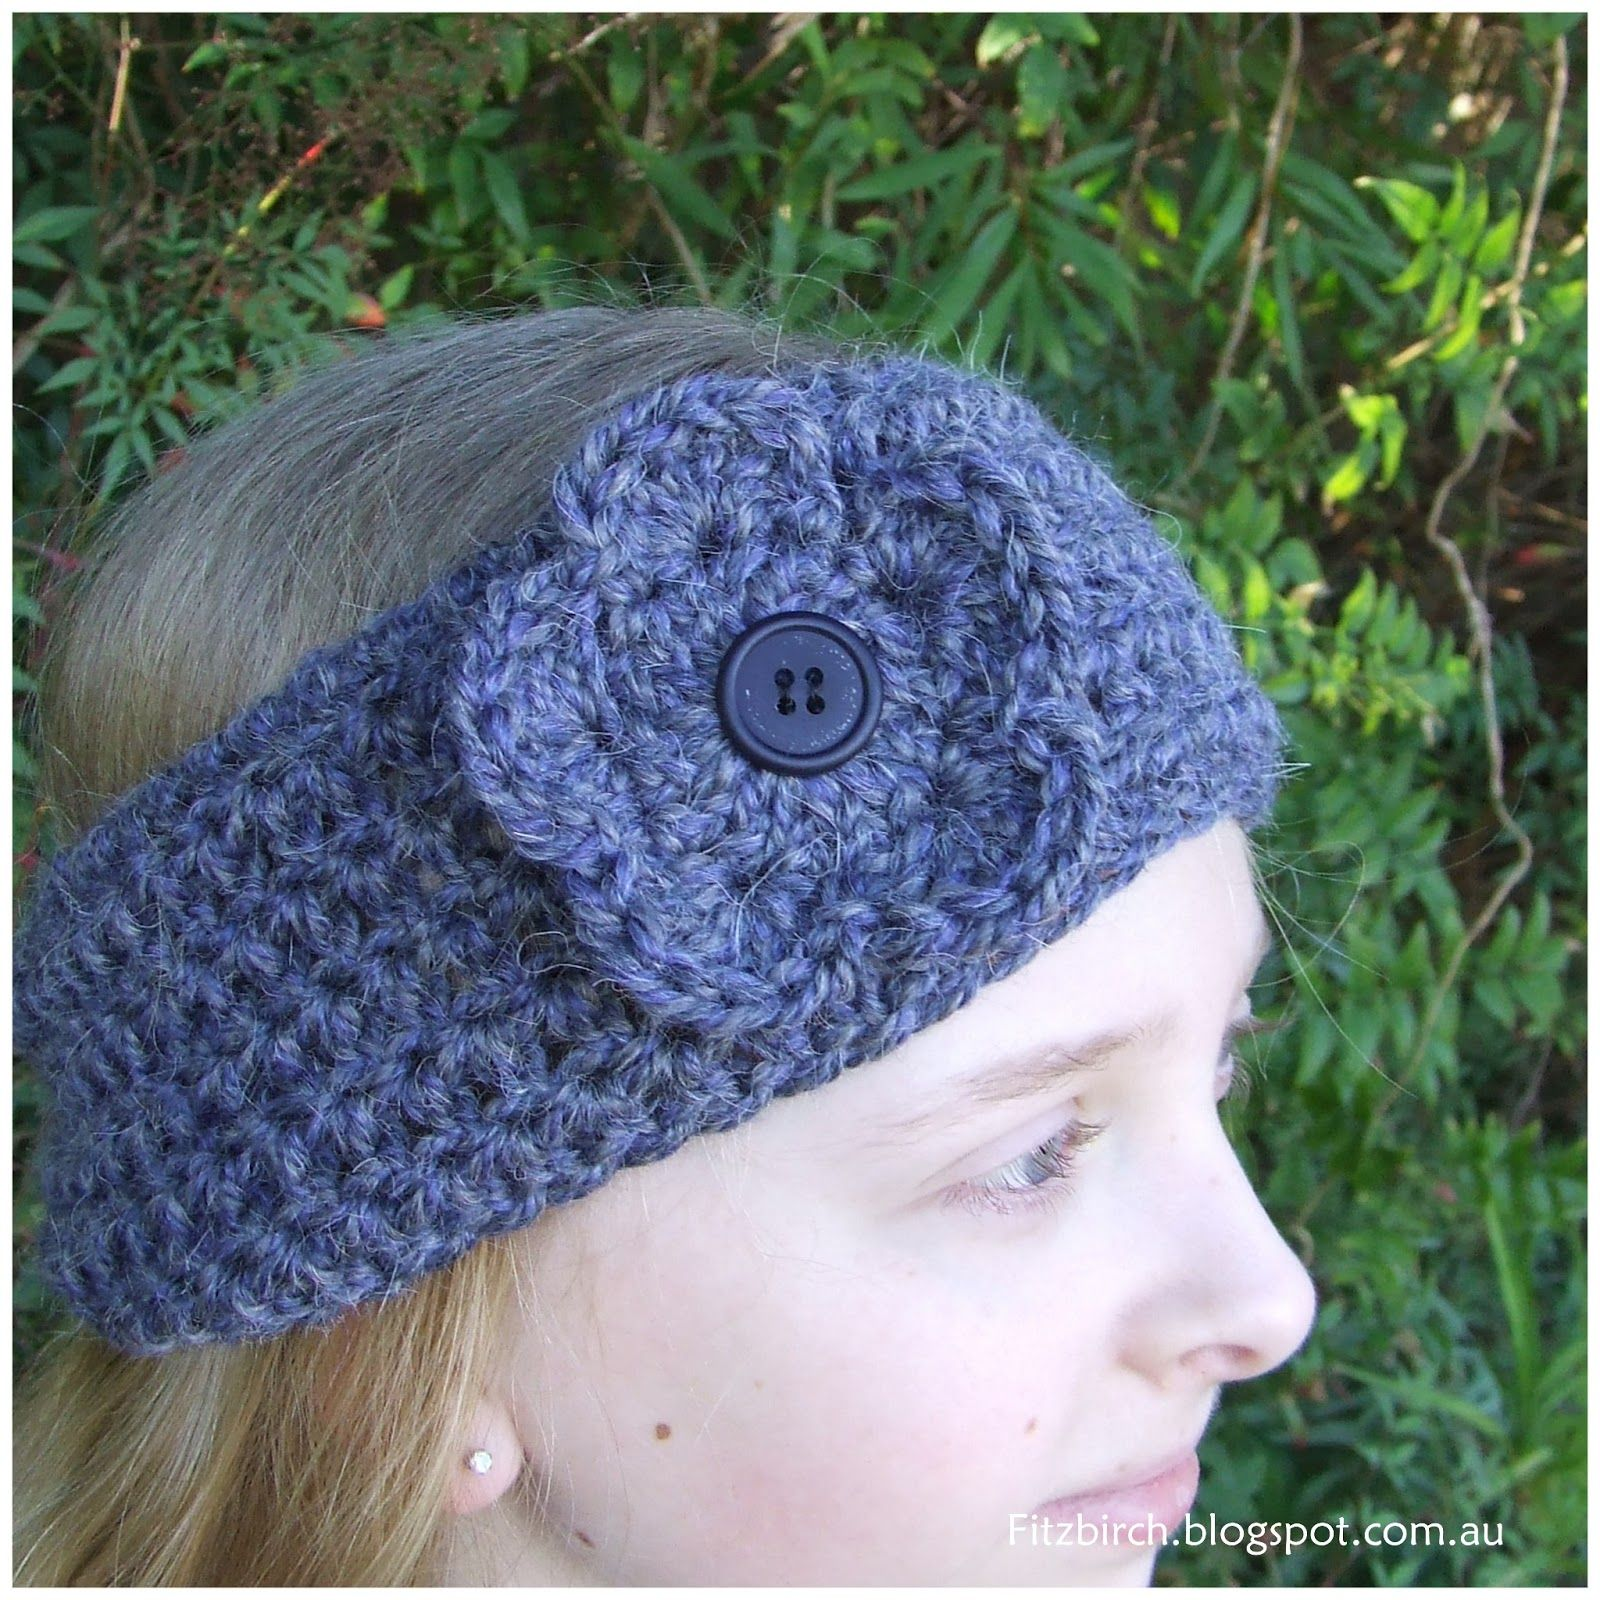 Ive been seeing crochet headbands all over facebook lately and ear warmers bankloansurffo Image collections